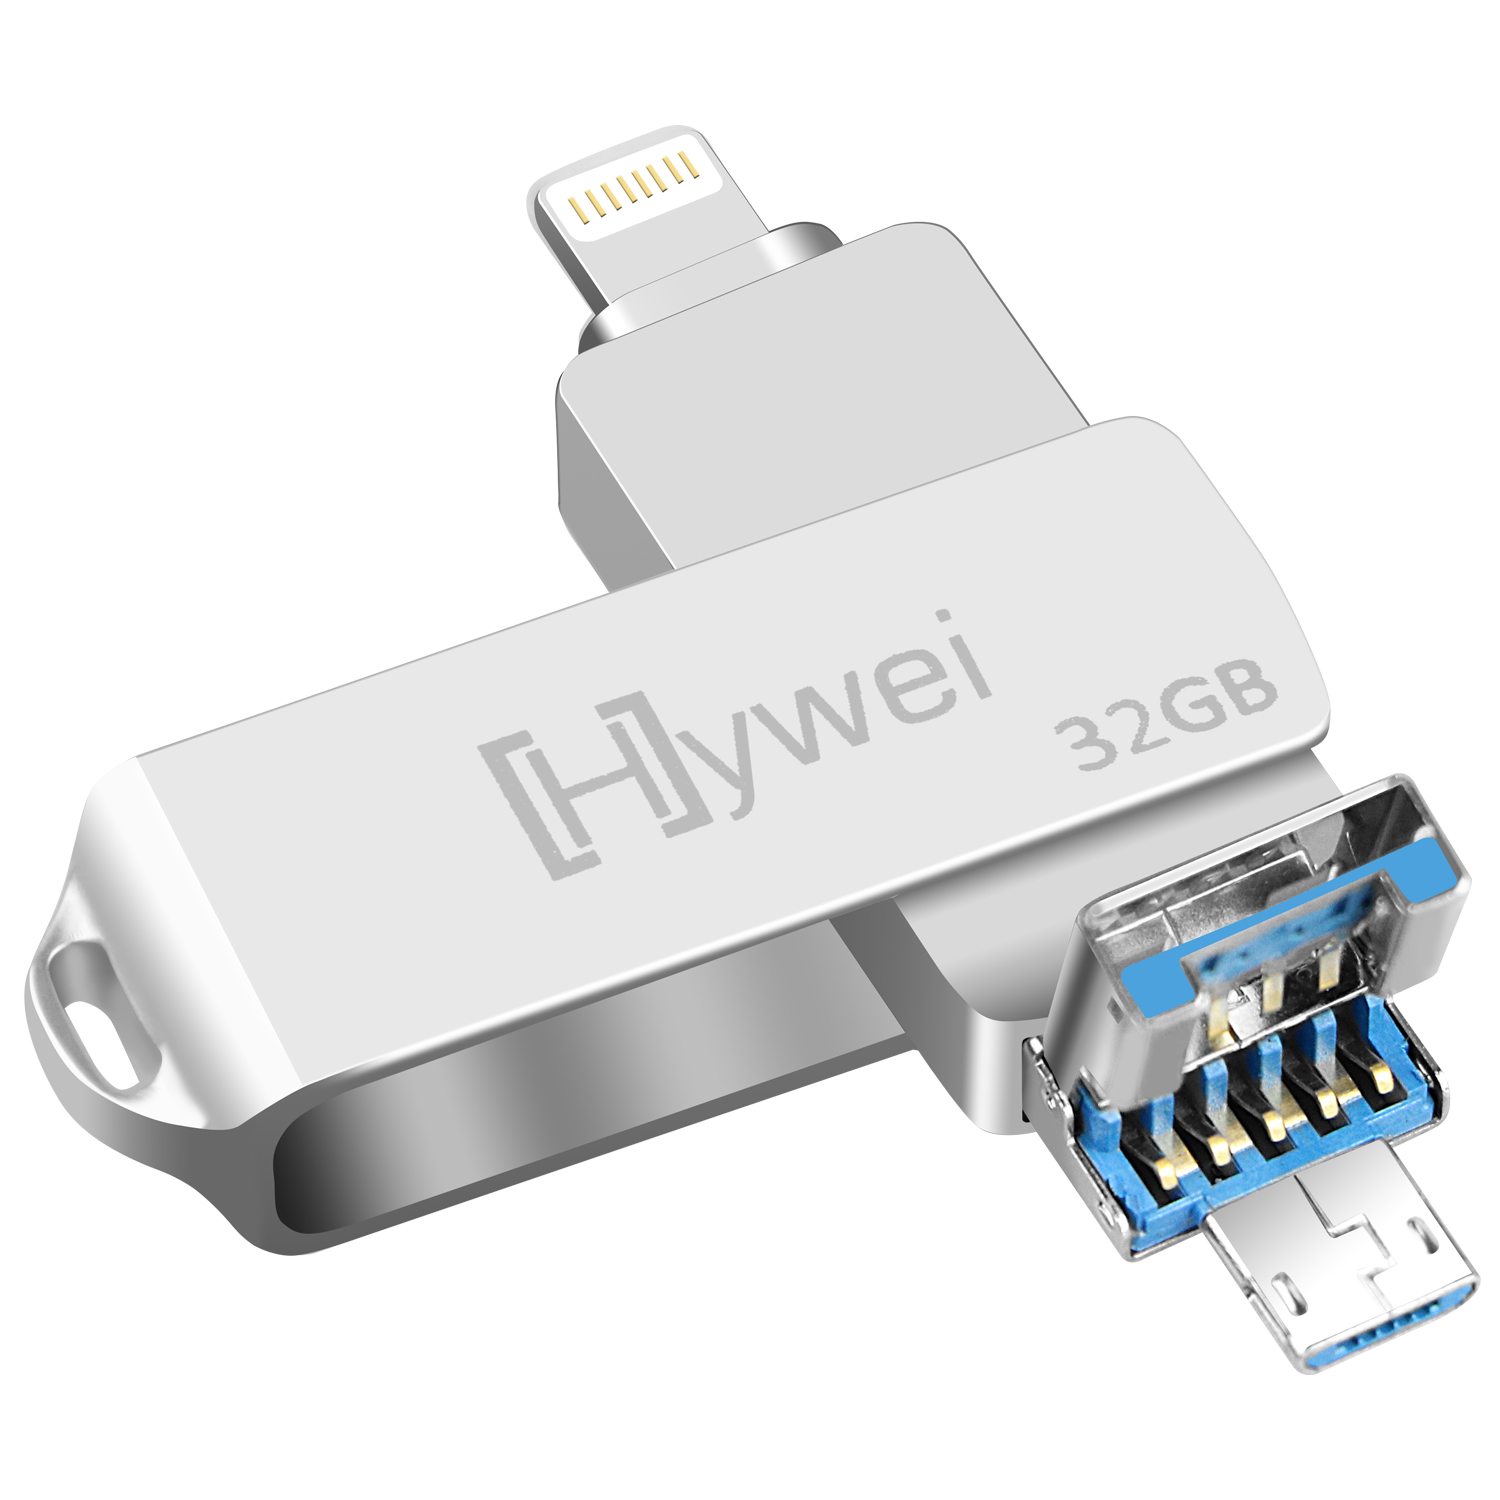 Swivel <strong>OTG</strong> <strong>USB</strong> <strong>flash</strong> <strong>drive</strong> 3 in 1 <strong>USB</strong> stick 16GB 32GB 64GB 3.0 <strong>OTG</strong> <strong>flash</strong> <strong>drive</strong> <strong>usb</strong> 3.0 for iphone Android PC without logo